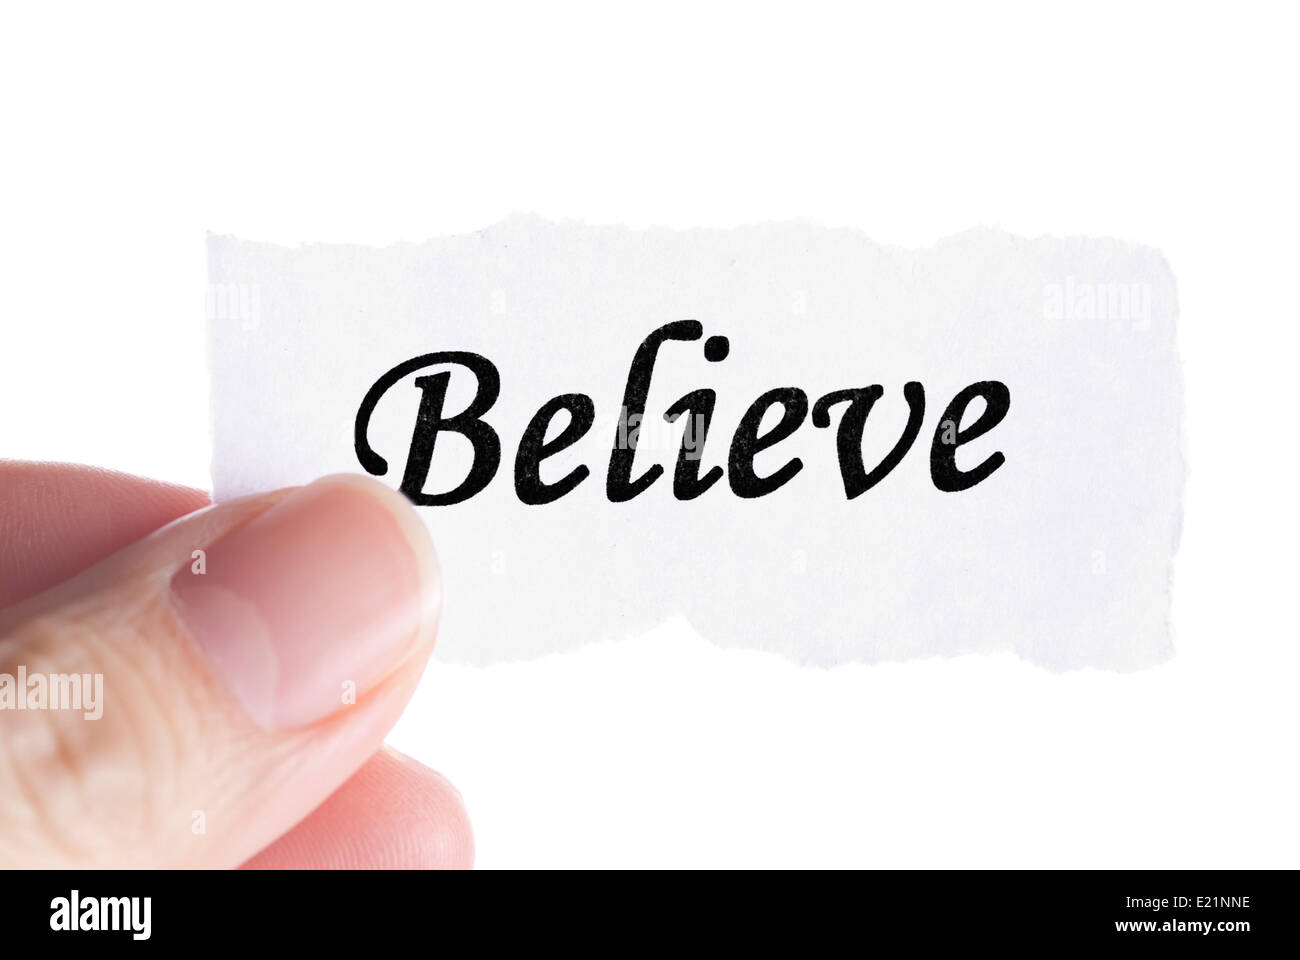 Believe word in finger - Stock Image